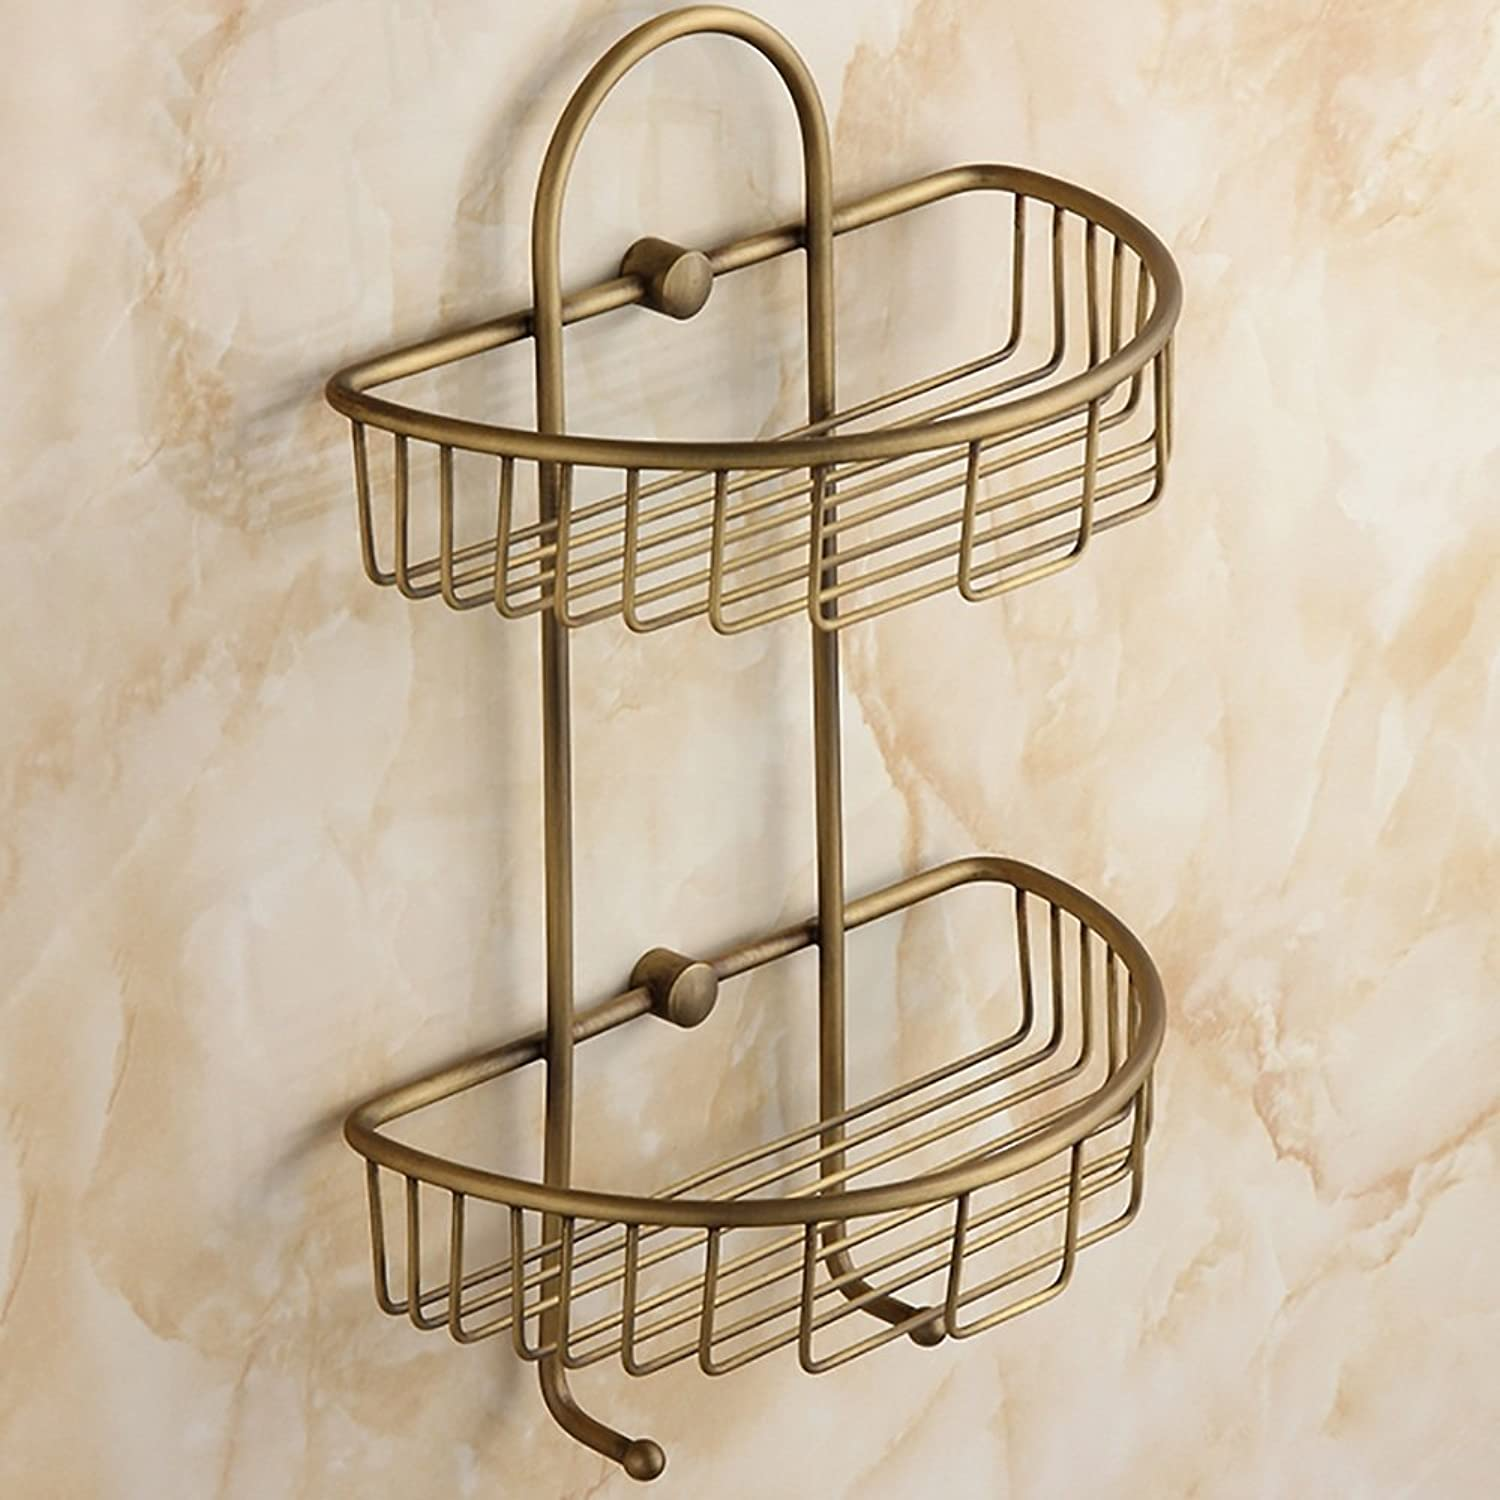 ZZHF yushizhiwujia Full Copper Creative Shelves Retro Bathroom Tripod Basket Bathroom Wall Storage Rack